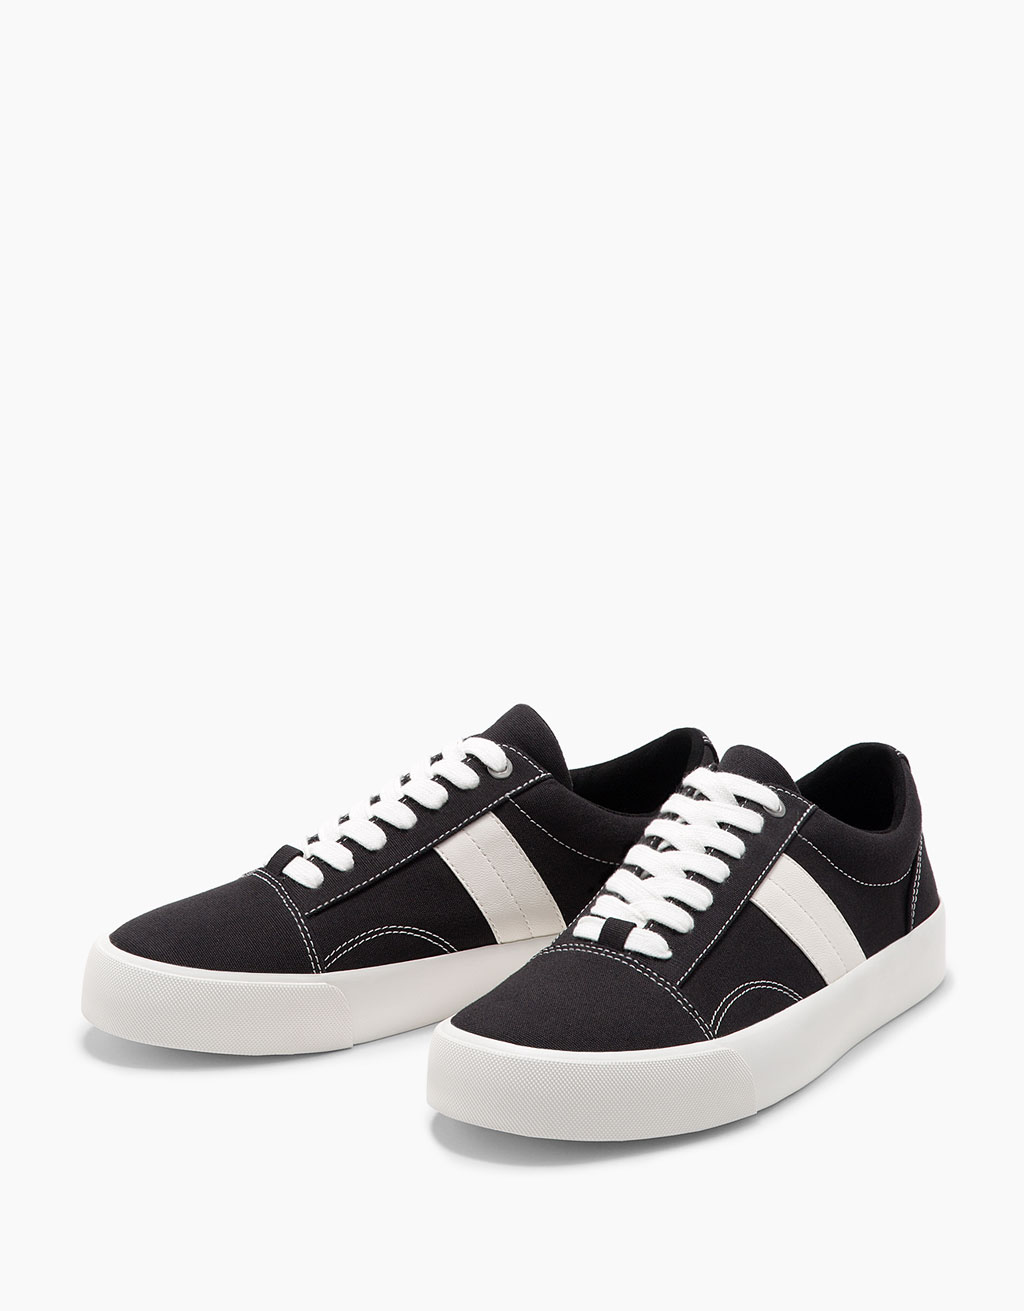 Fabric sneakers with side detail